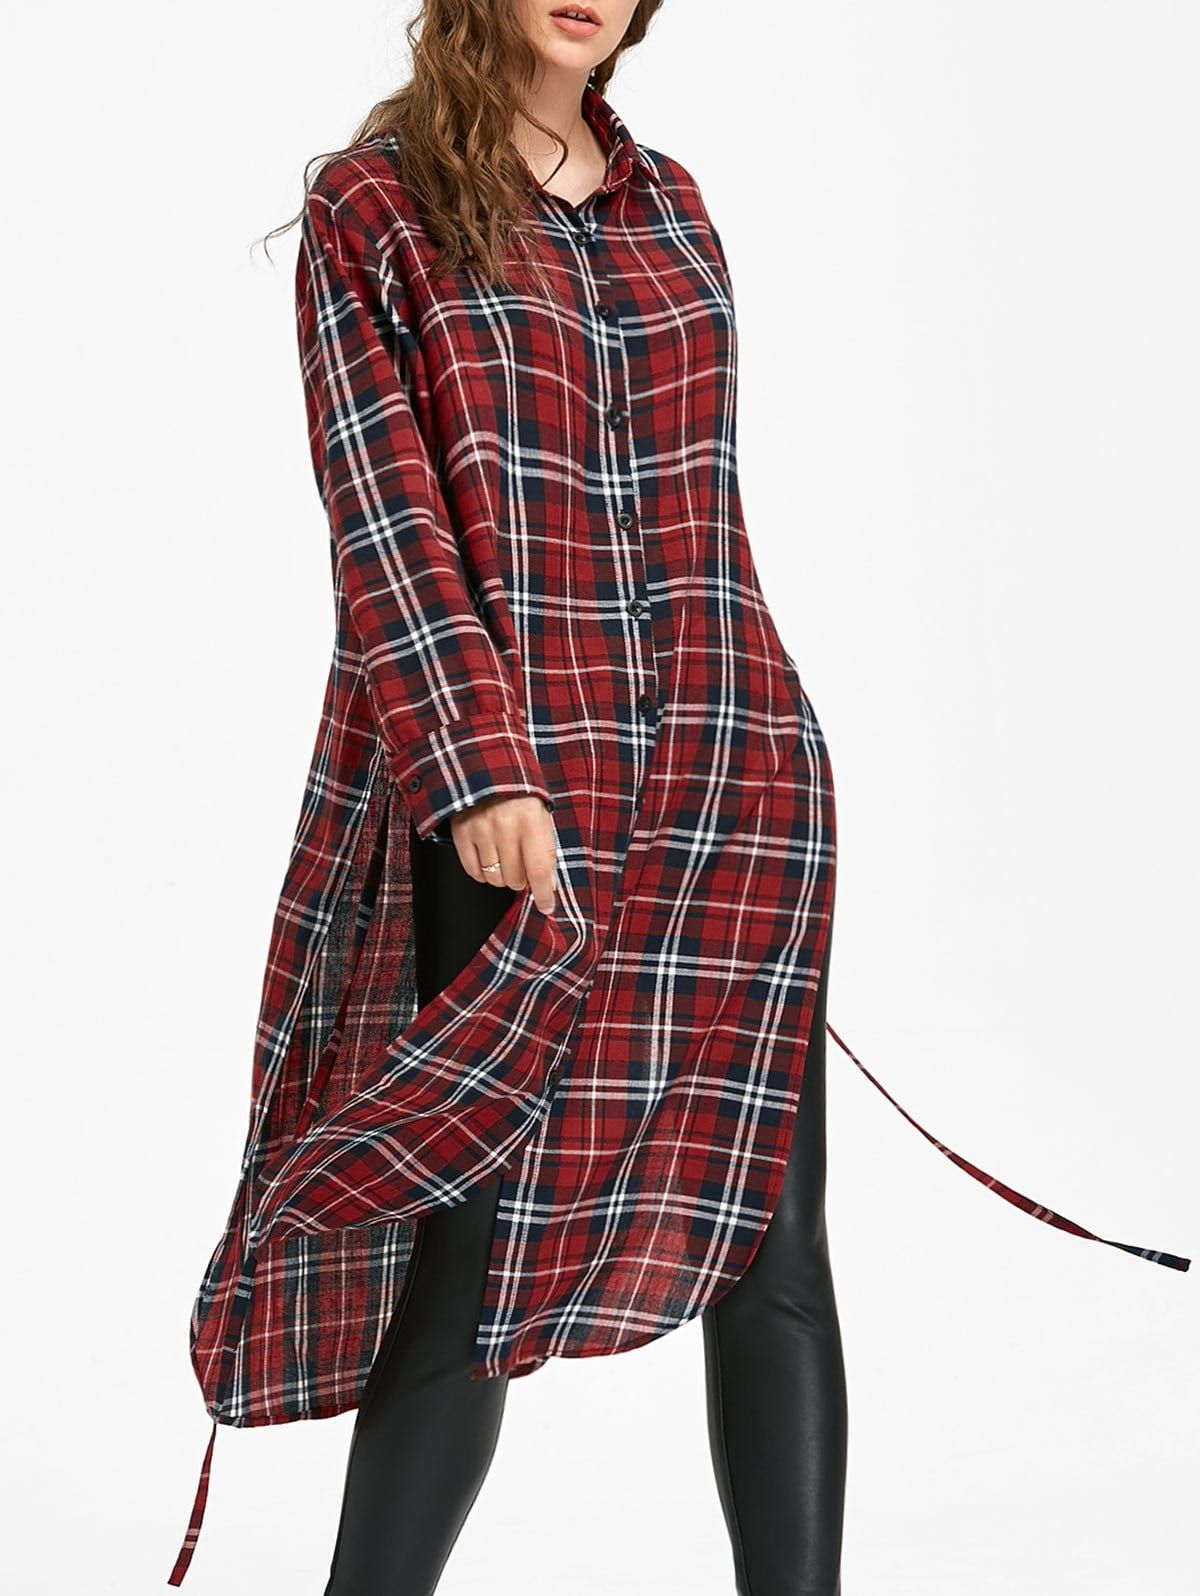 Long Sleeve Button Down Checked Dress With Tie Long Sleeve Dress Online Dress With Tie Casual Tunic Dress [ 1596 x 1200 Pixel ]